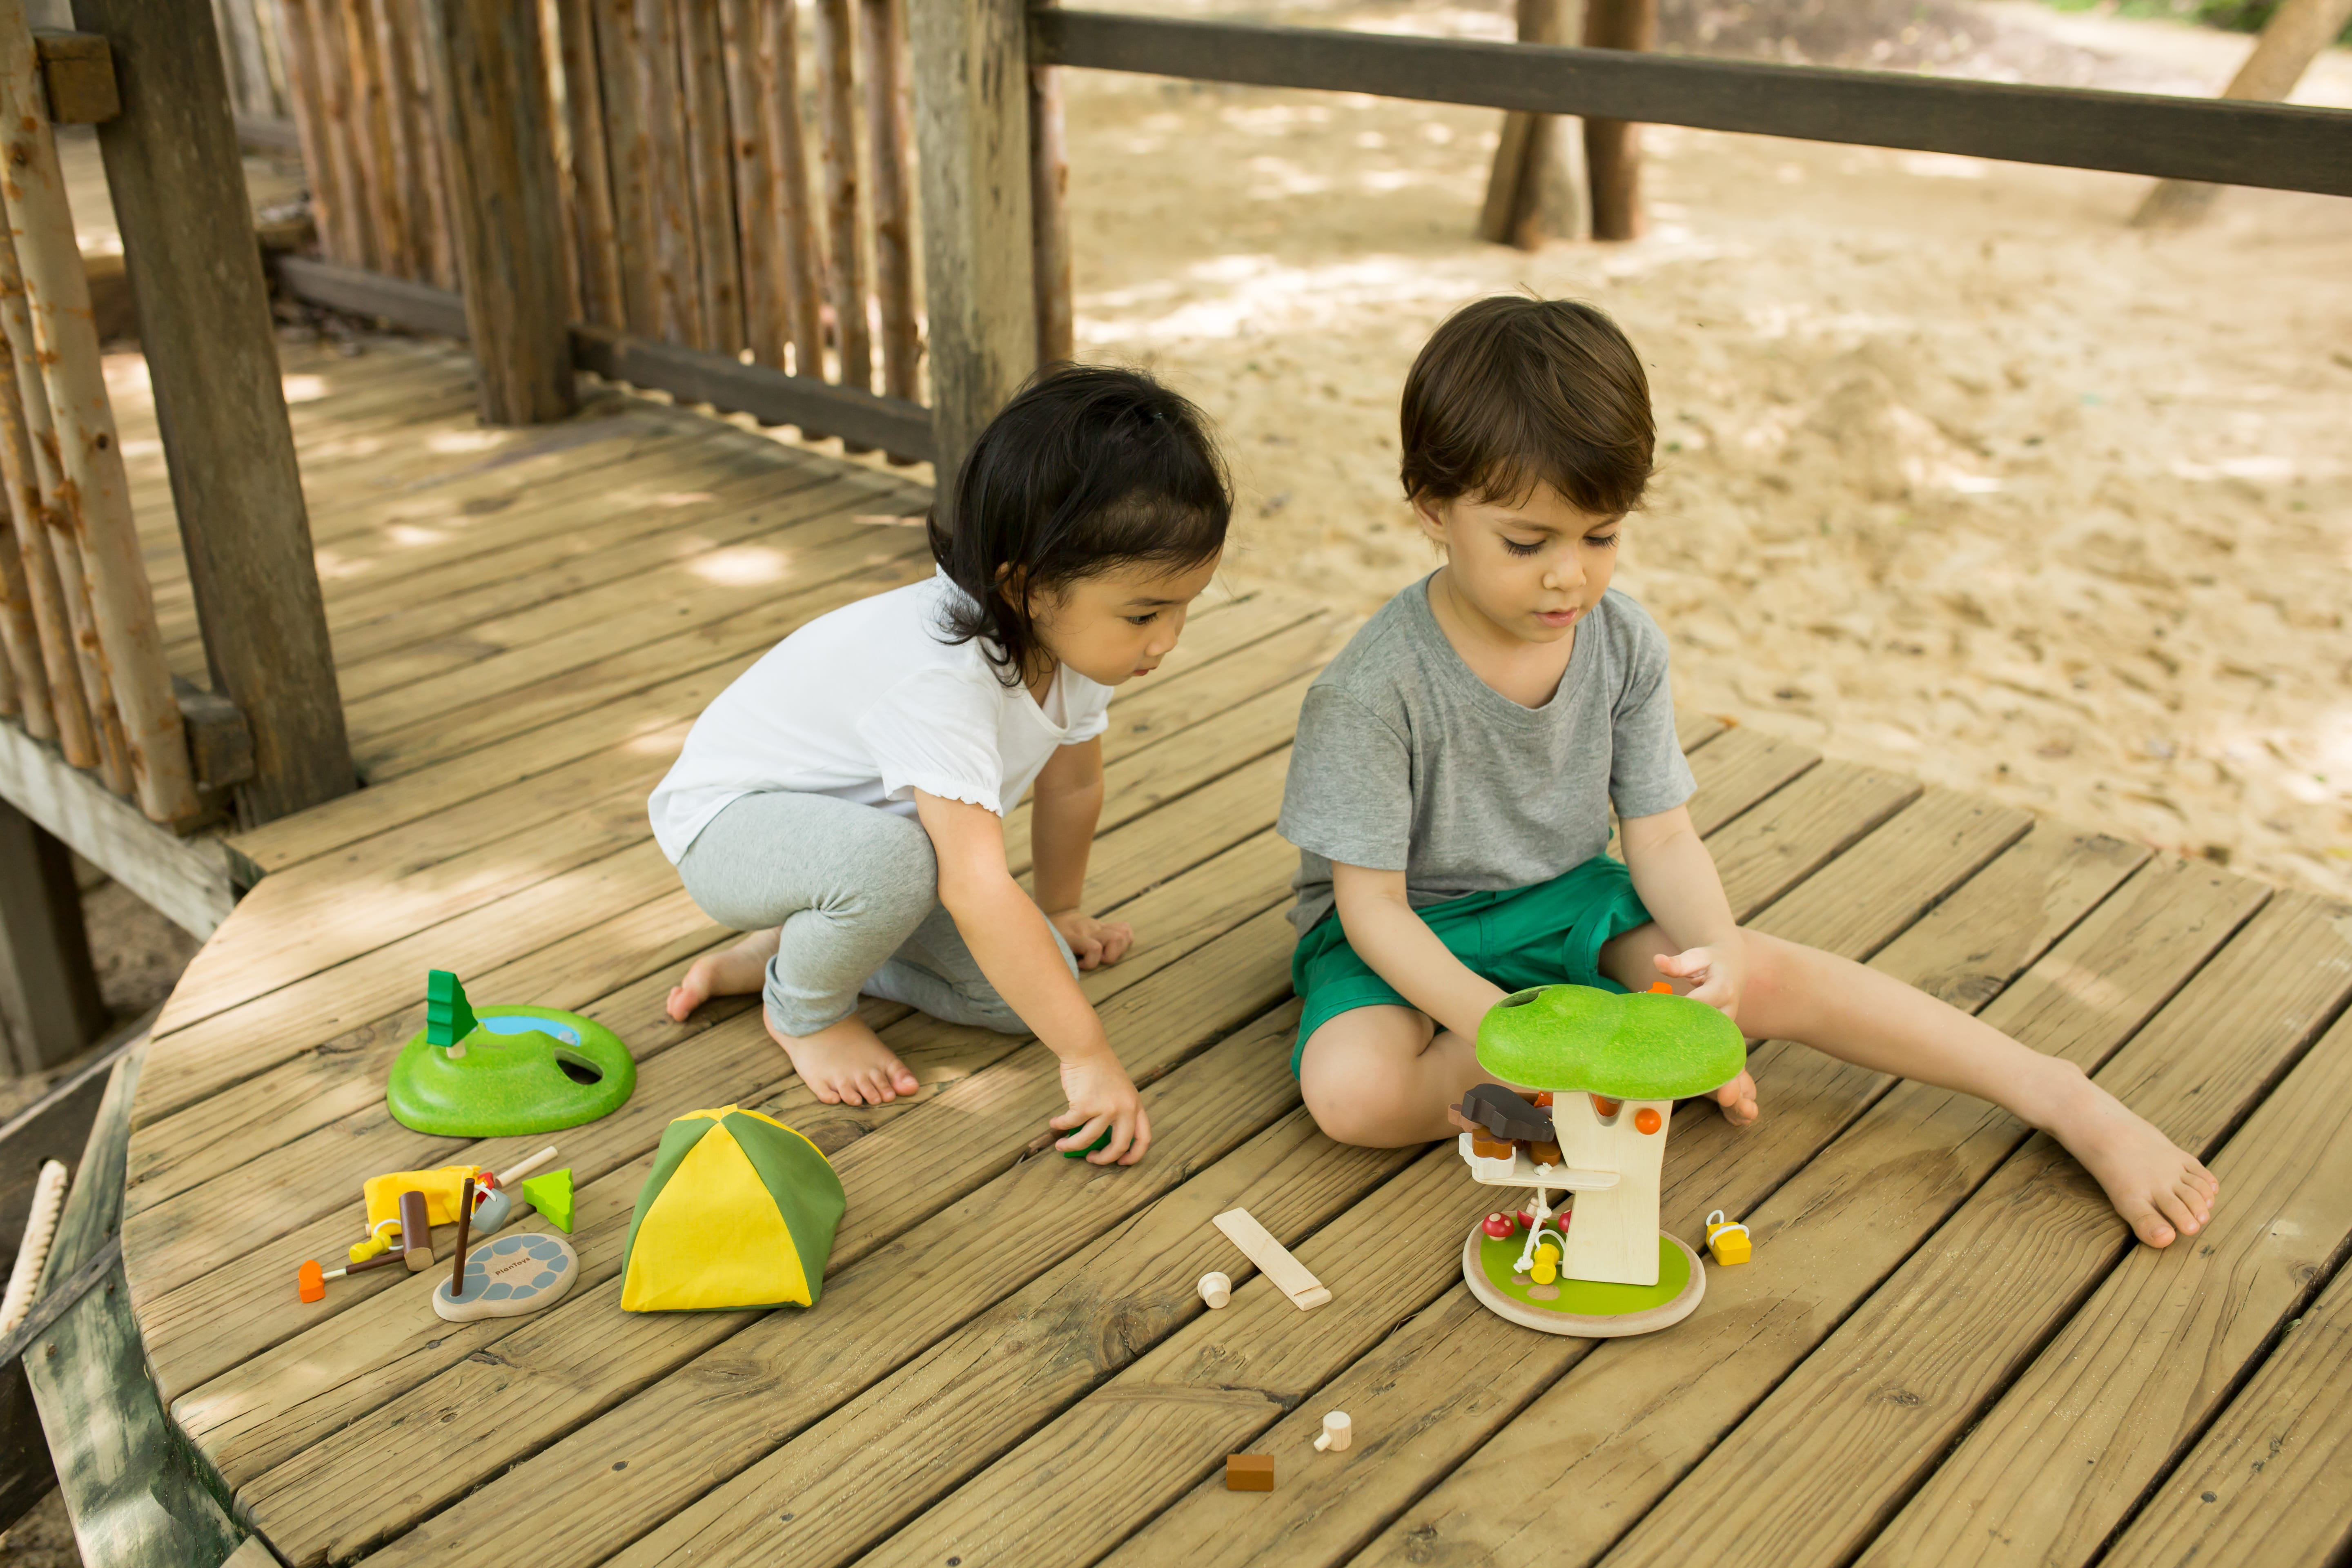 6626_PlanToys_TREE_HOUSE_Pretend_Play_Imagination_Coordination_Language_and_Communications_Social_Fine_Motor_3yrs_Wooden_toys_Education_toys_Safety_Toys_Non-toxic_2.jpg